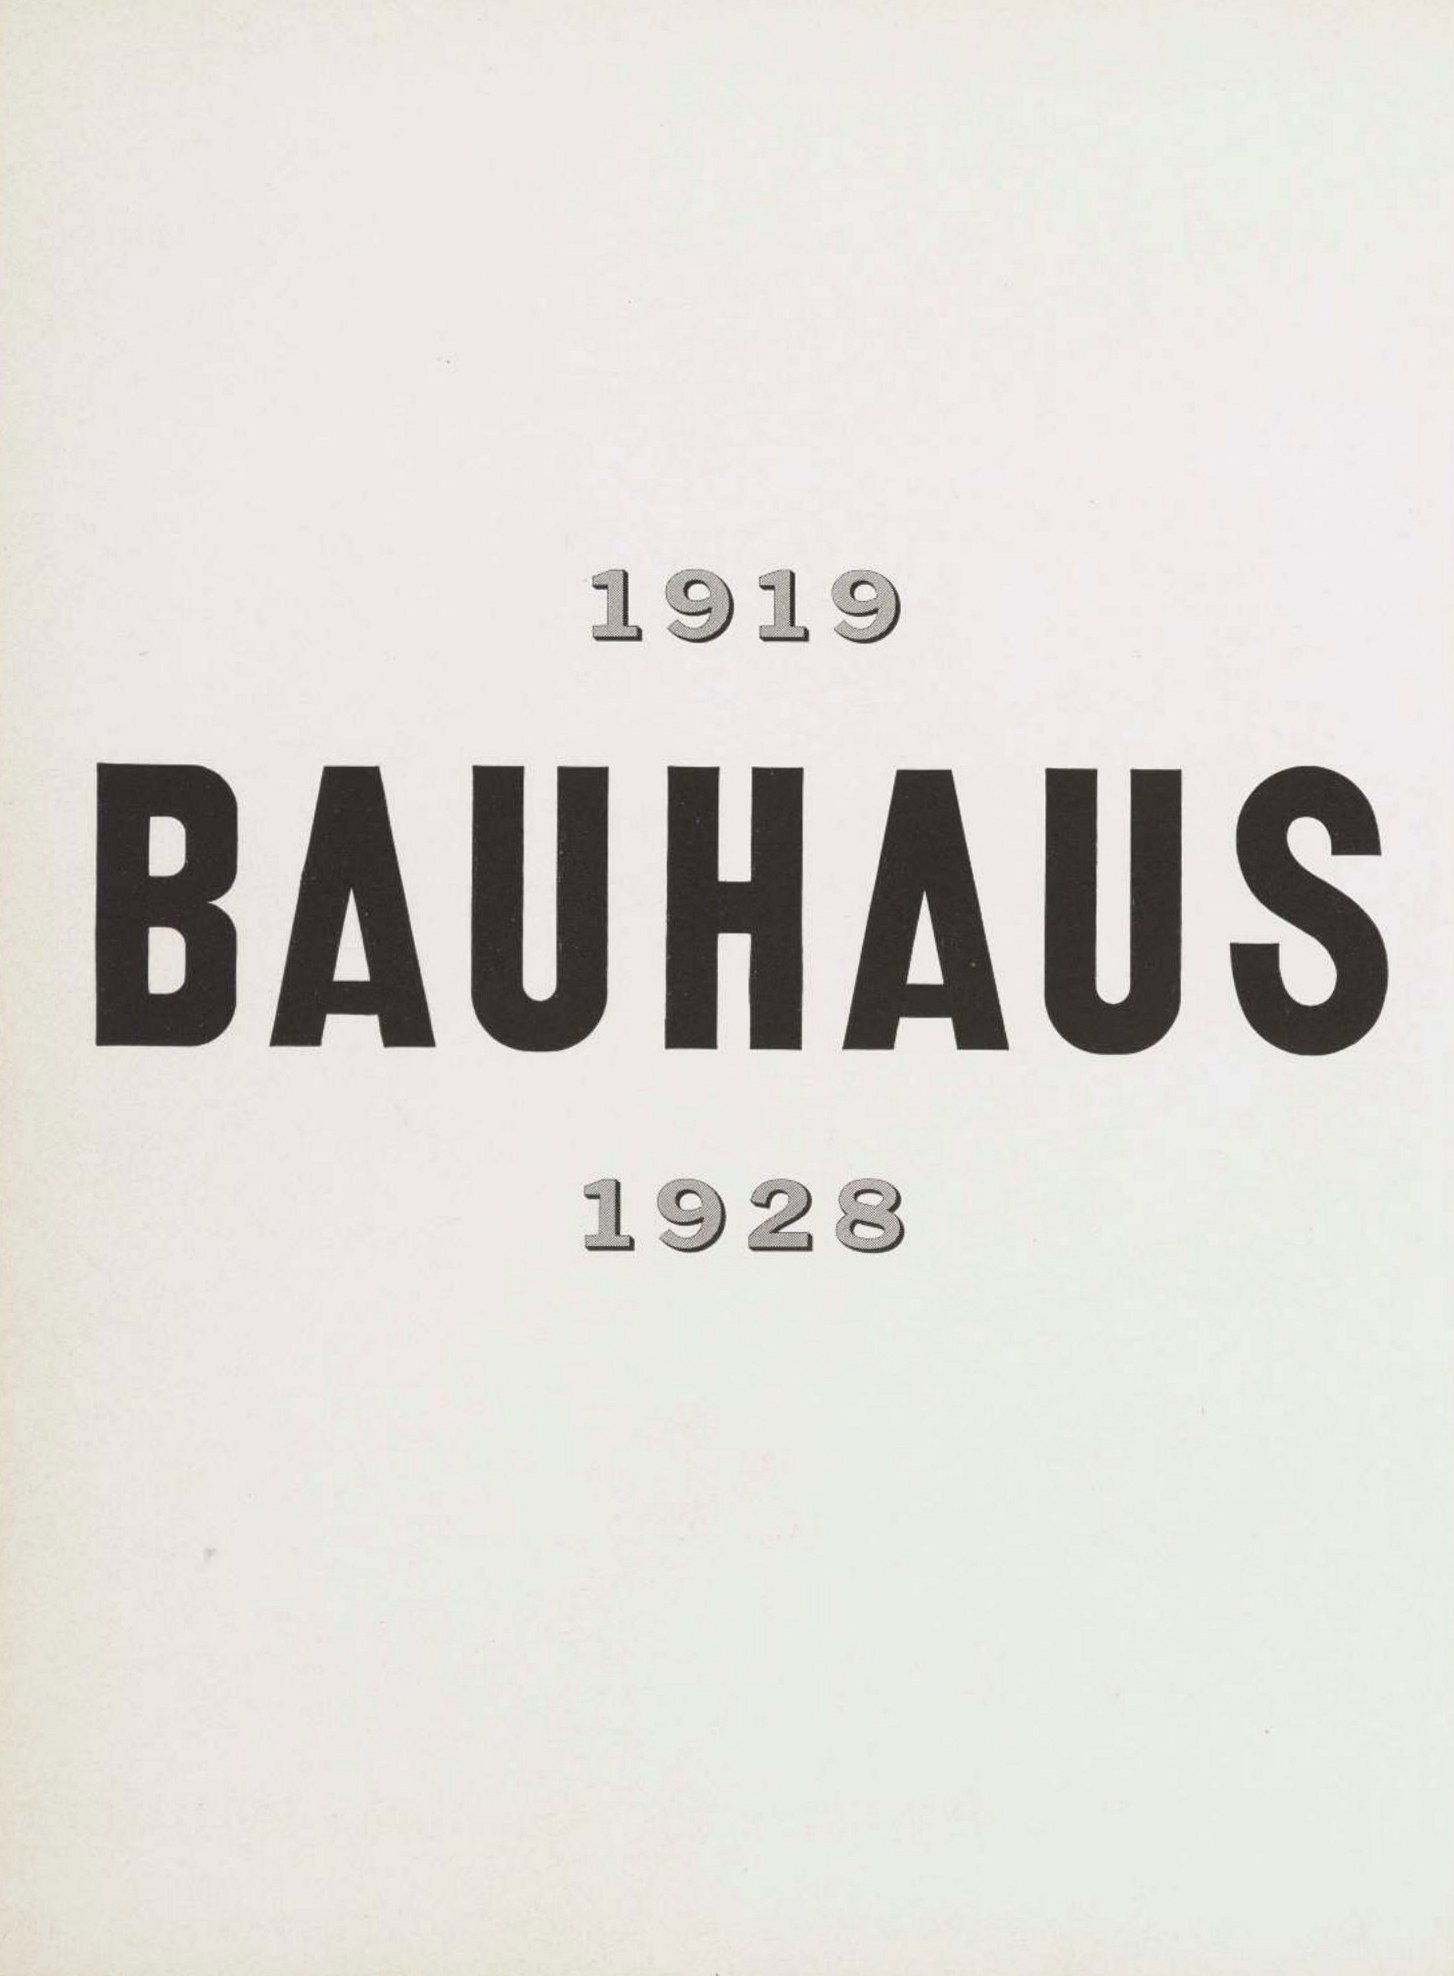 Bauhaus, 1919-1928 / Edited by Herbert Bayer, Walter Gropius, Ise Gropius (Chairman of the Department of Architecture, Harvard University). — New York : The Museum of Modern Art, 1938